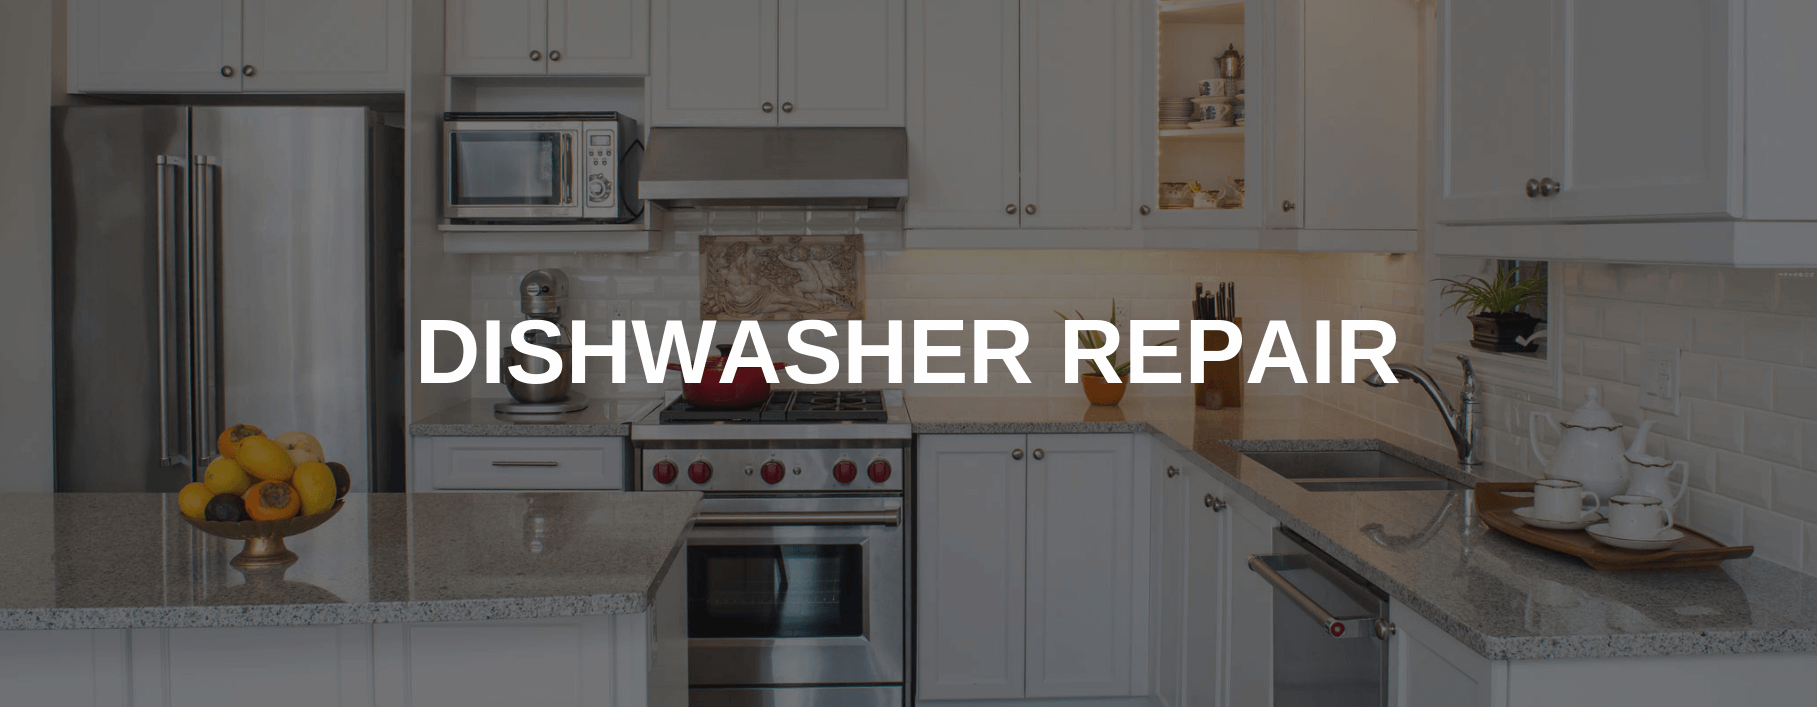 dishwasher repair bellevue